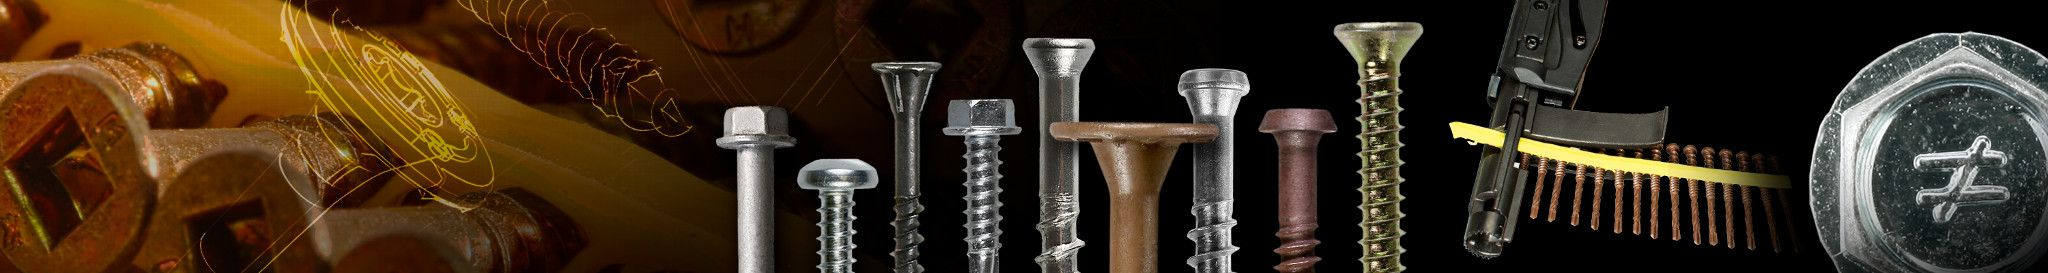 Fastener Productivity Solutions